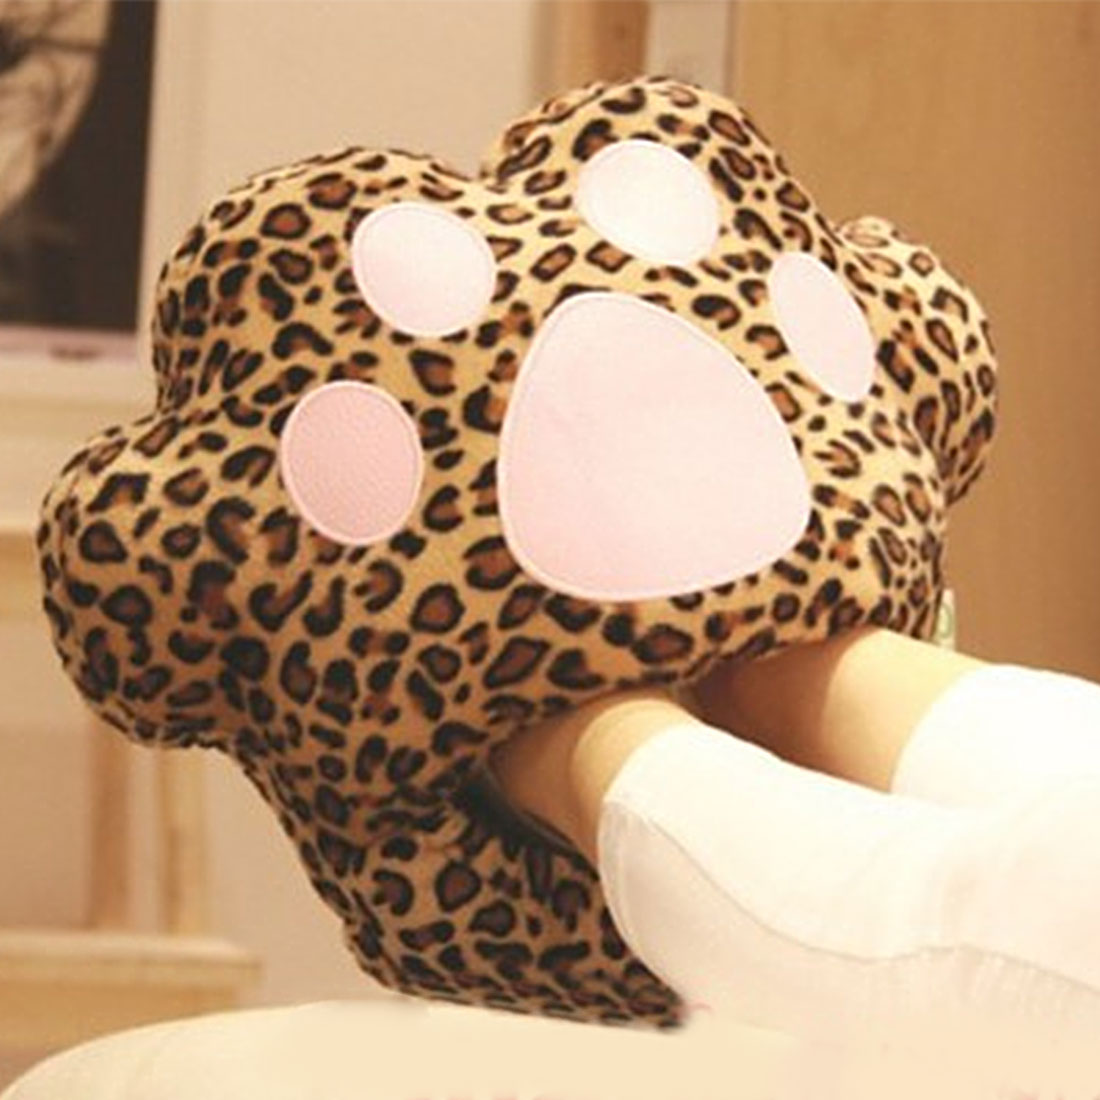 Practical Big Feet Warm Slippers Cartoon USB Foot Warmer Shoes Computer PC Electric Heat Slipper soft and comfortable